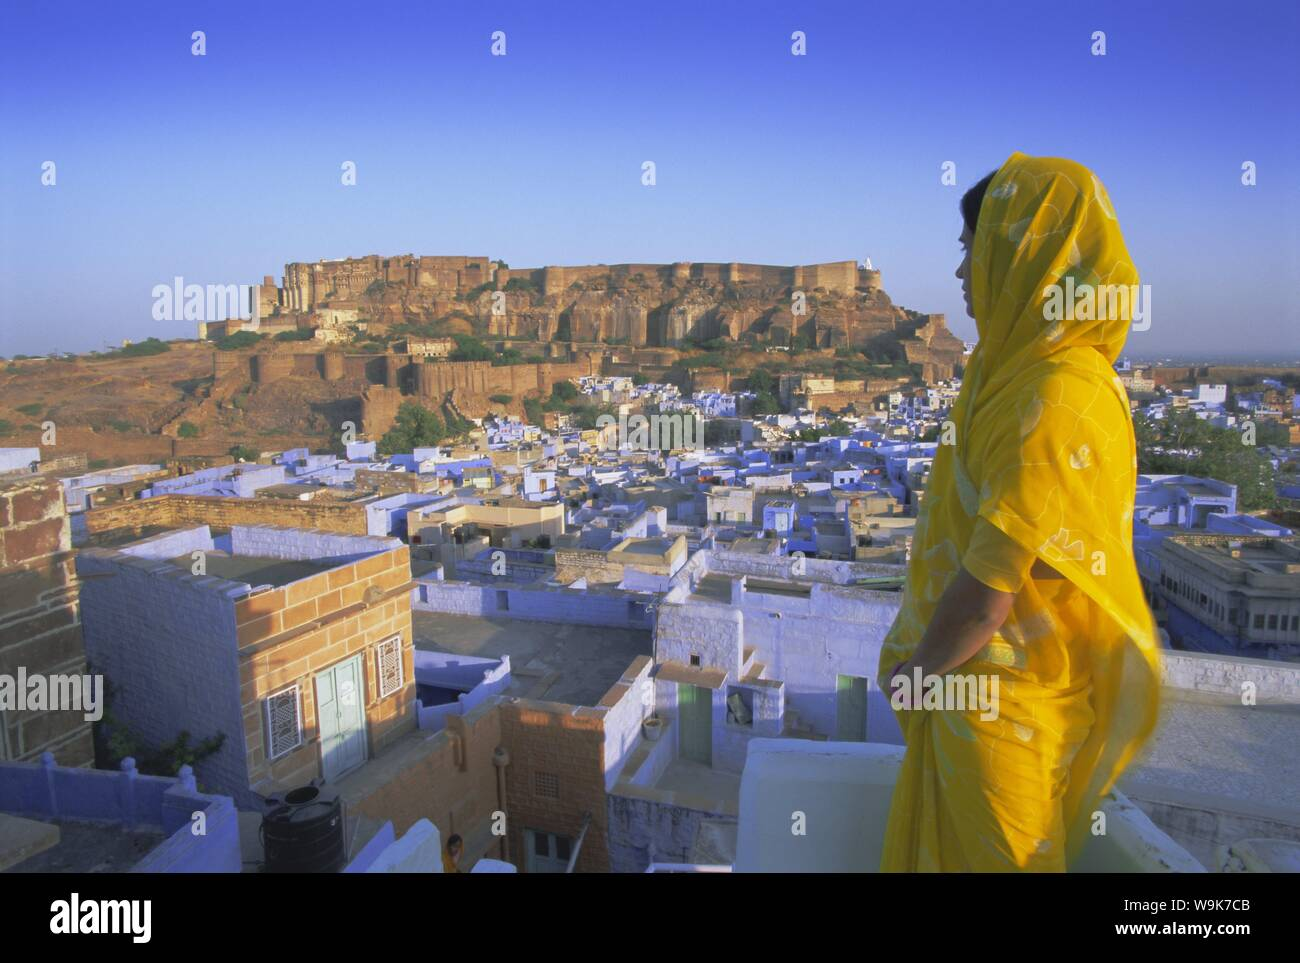 A woman in a yellow sari looking out over the 'Blue city' and fort, Jodhpur, Rajasthan State, India, Asia Stock Photo